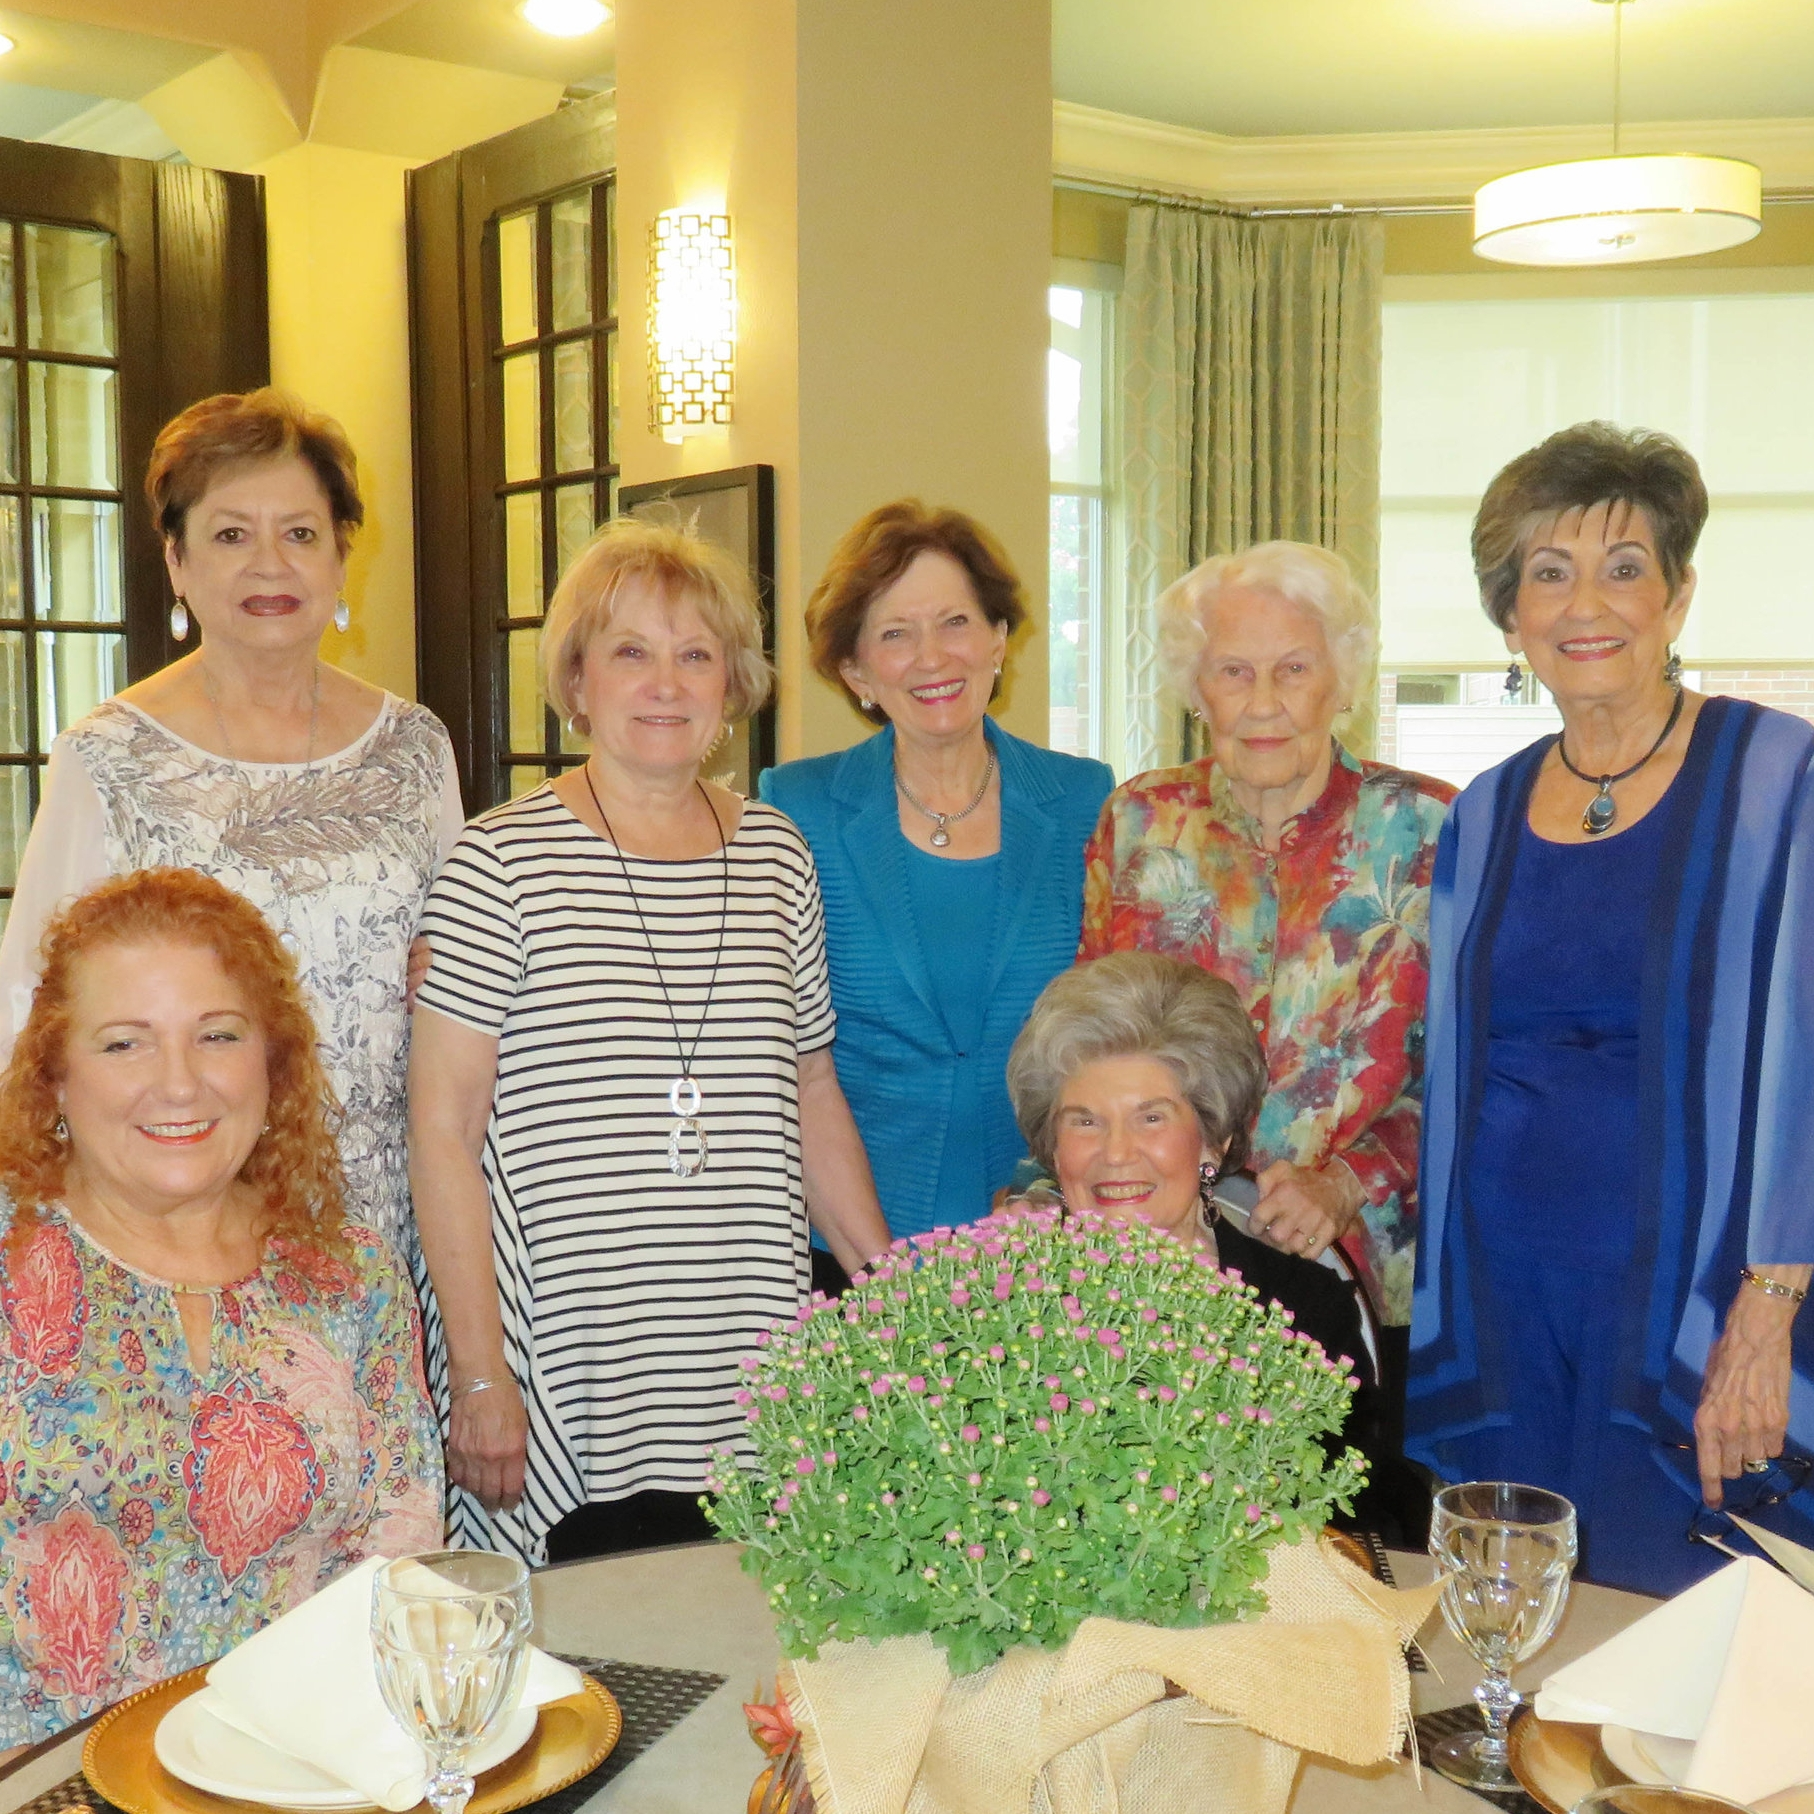 Rosemary White, Nancy Lee, Alice McMillan, Pat Thompson and Kay Mohundro